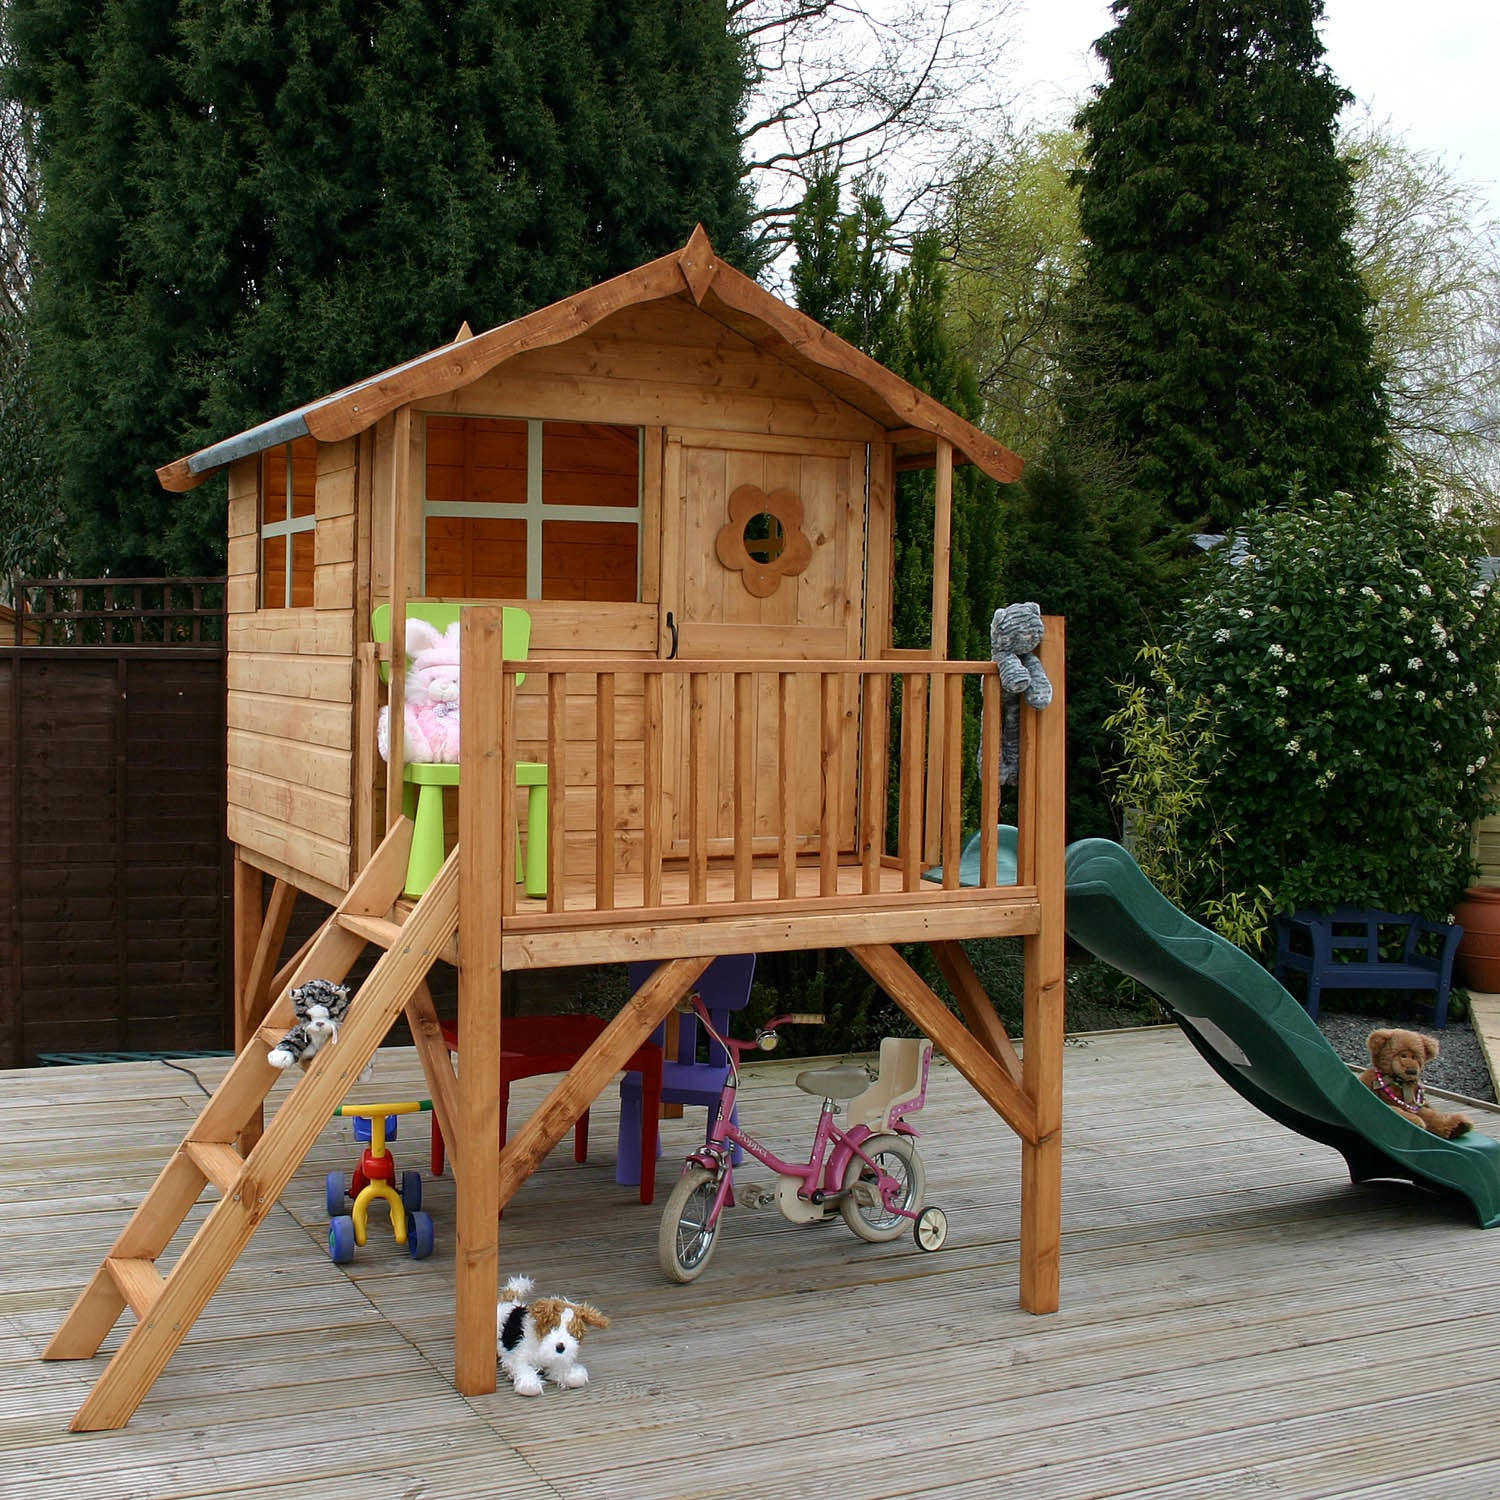 5 X 5 Wooden Tulip Playhouse Tower With Slide